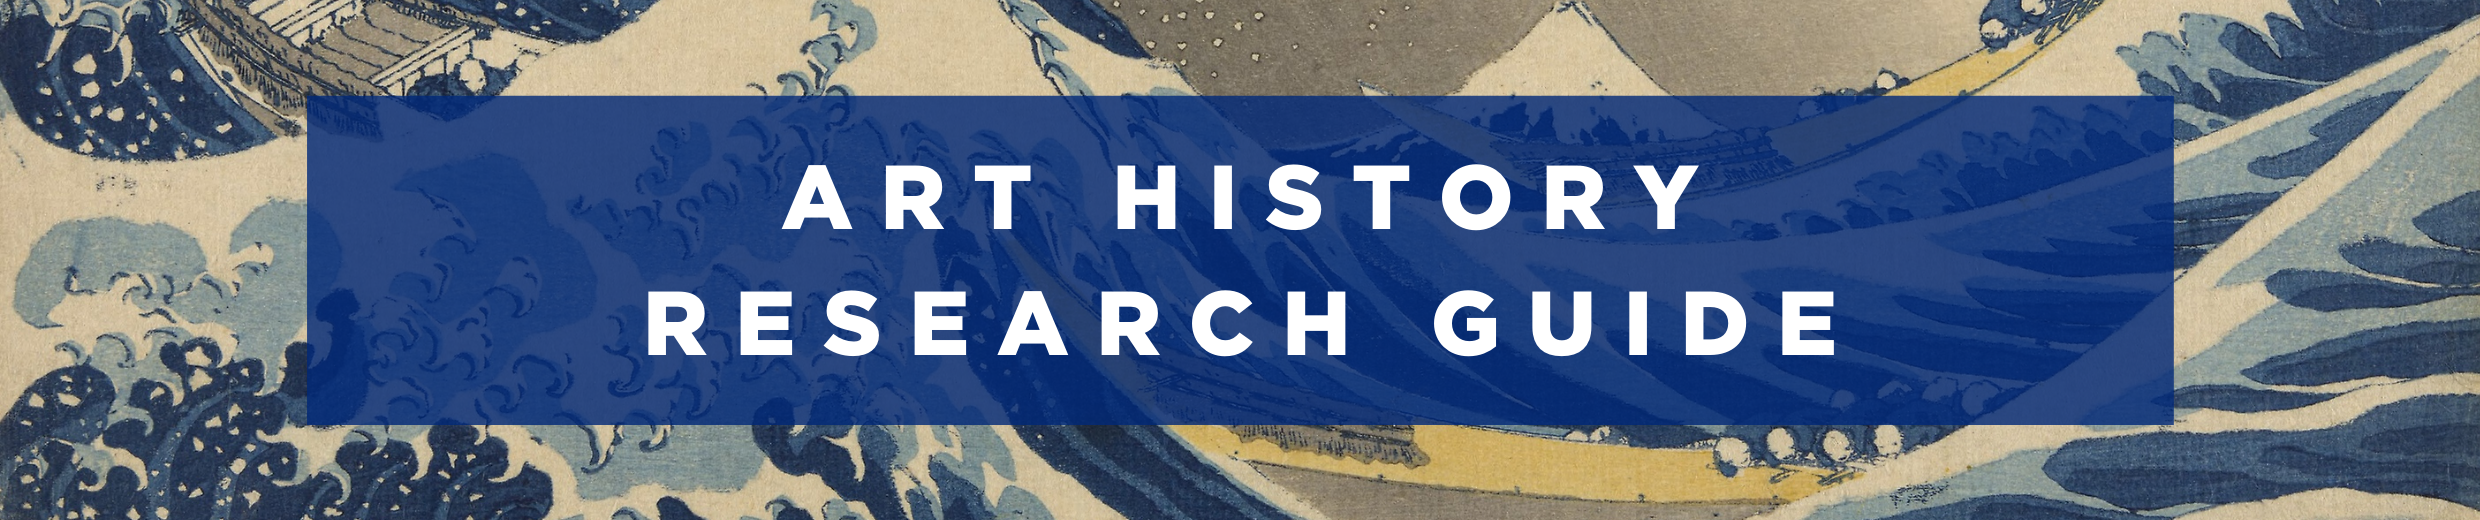 Banner reading Art History Research Guide